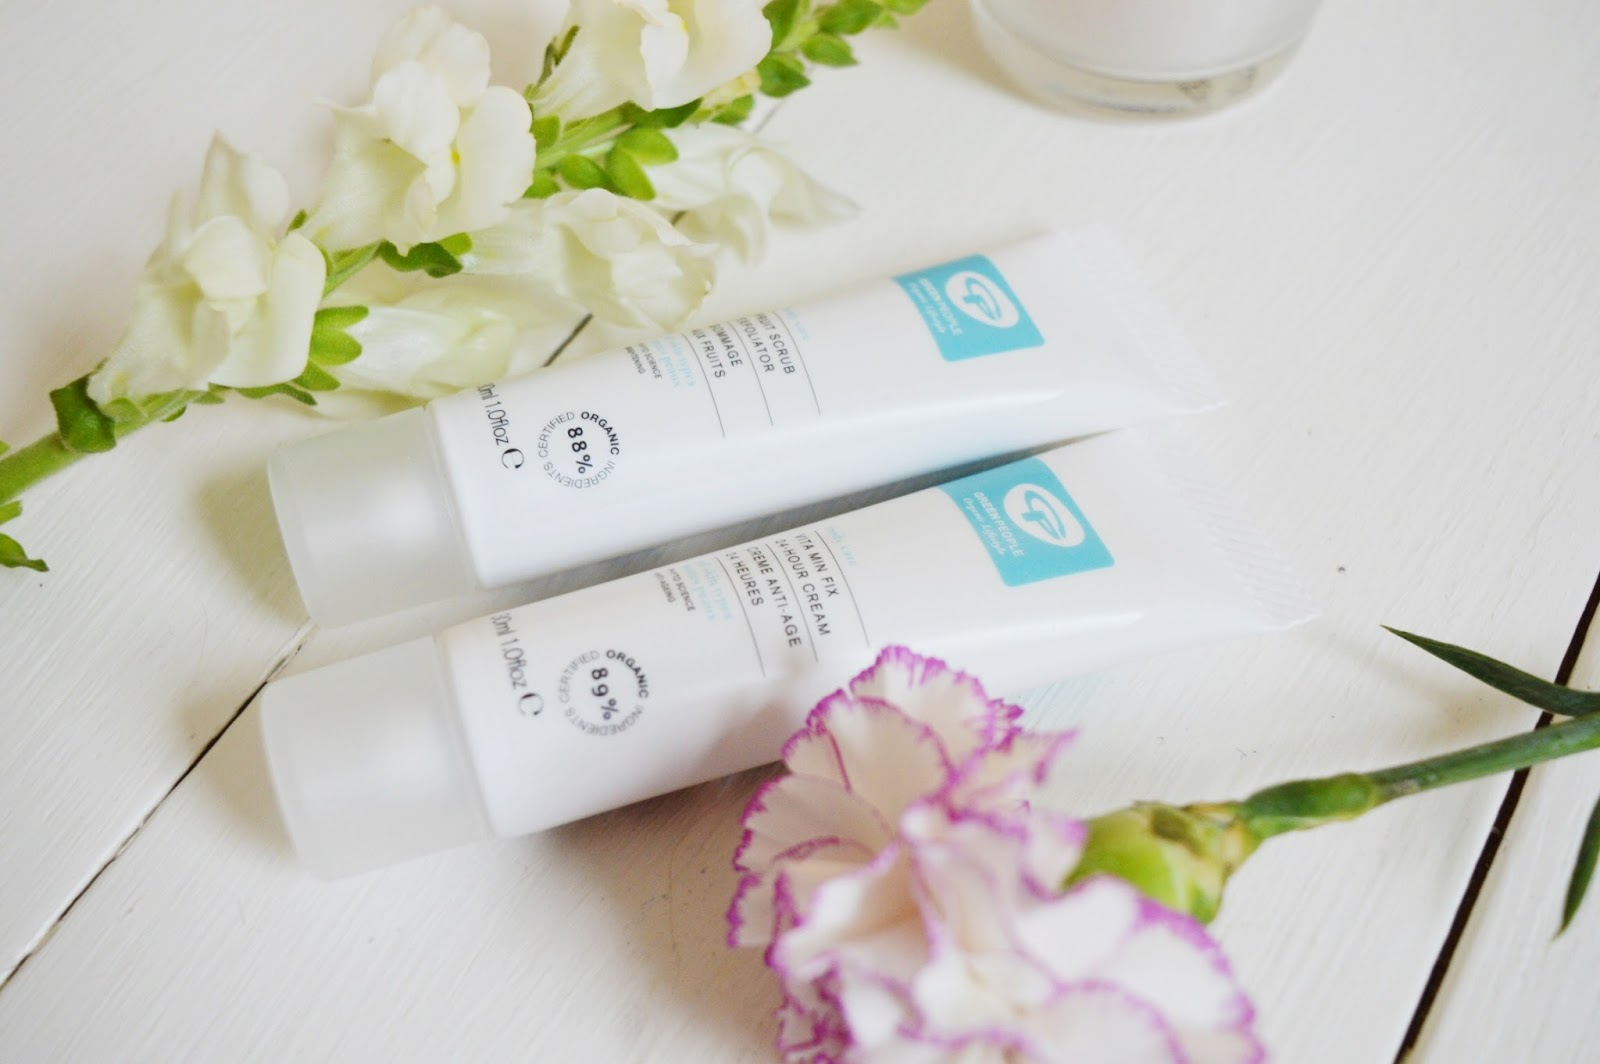 Green People skincare review, beauty bloggers, UK beauty blog, FashionFake blog